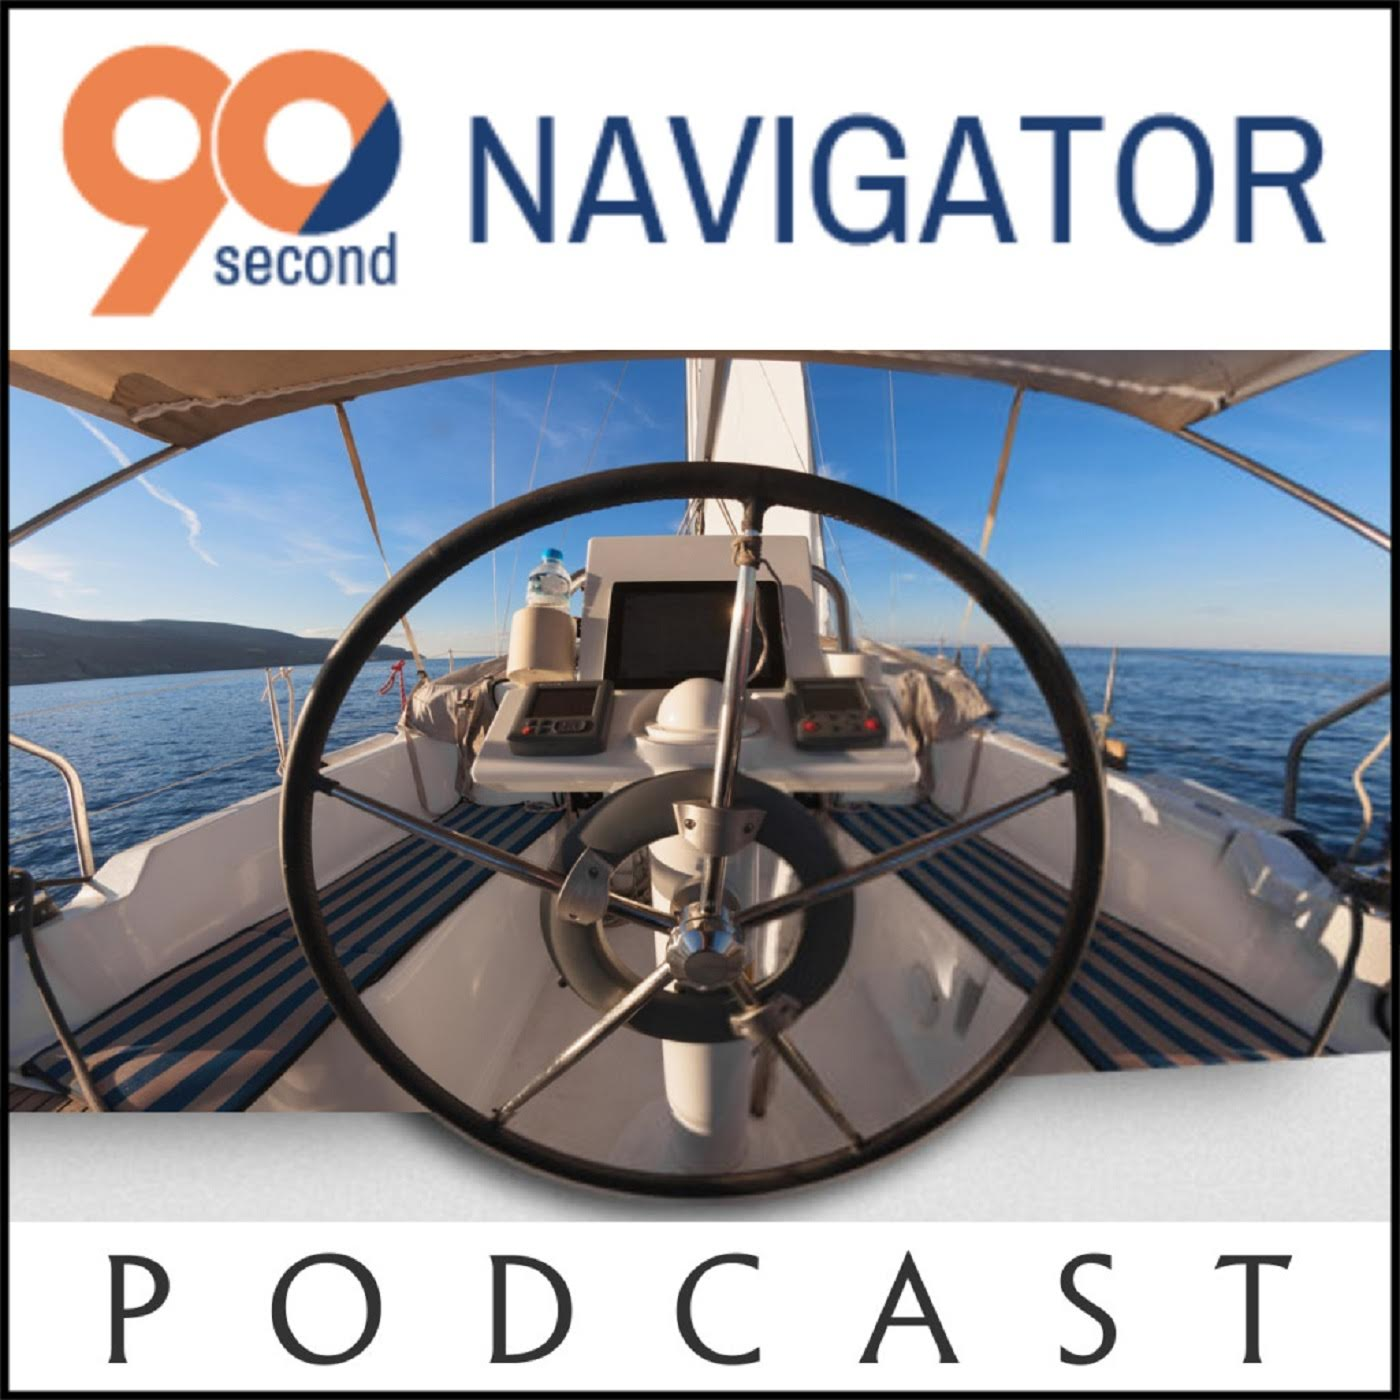 90 Second Navigator with Joel Brookman